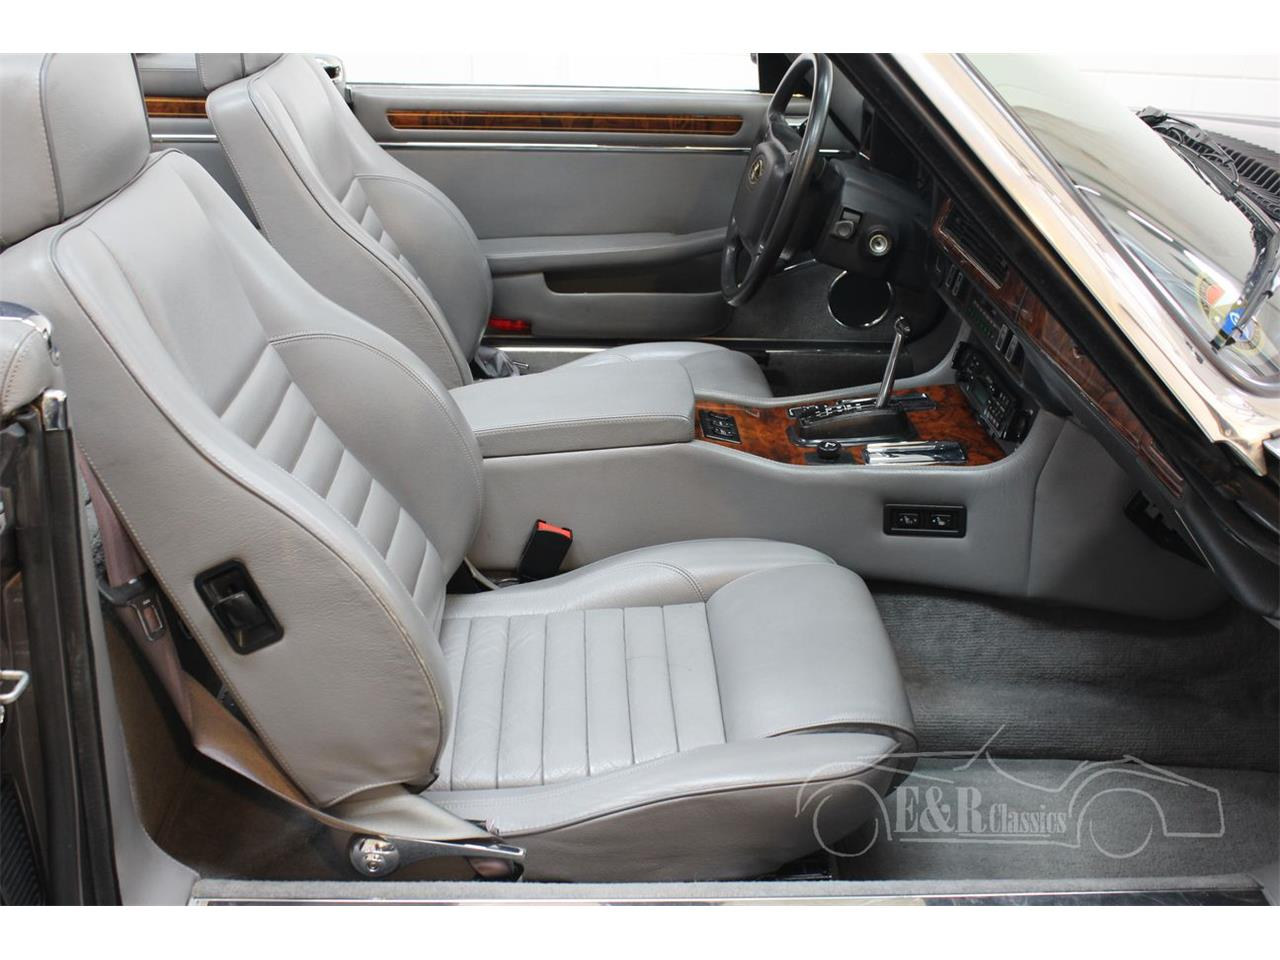 Large Picture of 1991 XJS Offered by E & R Classics - QQJ7